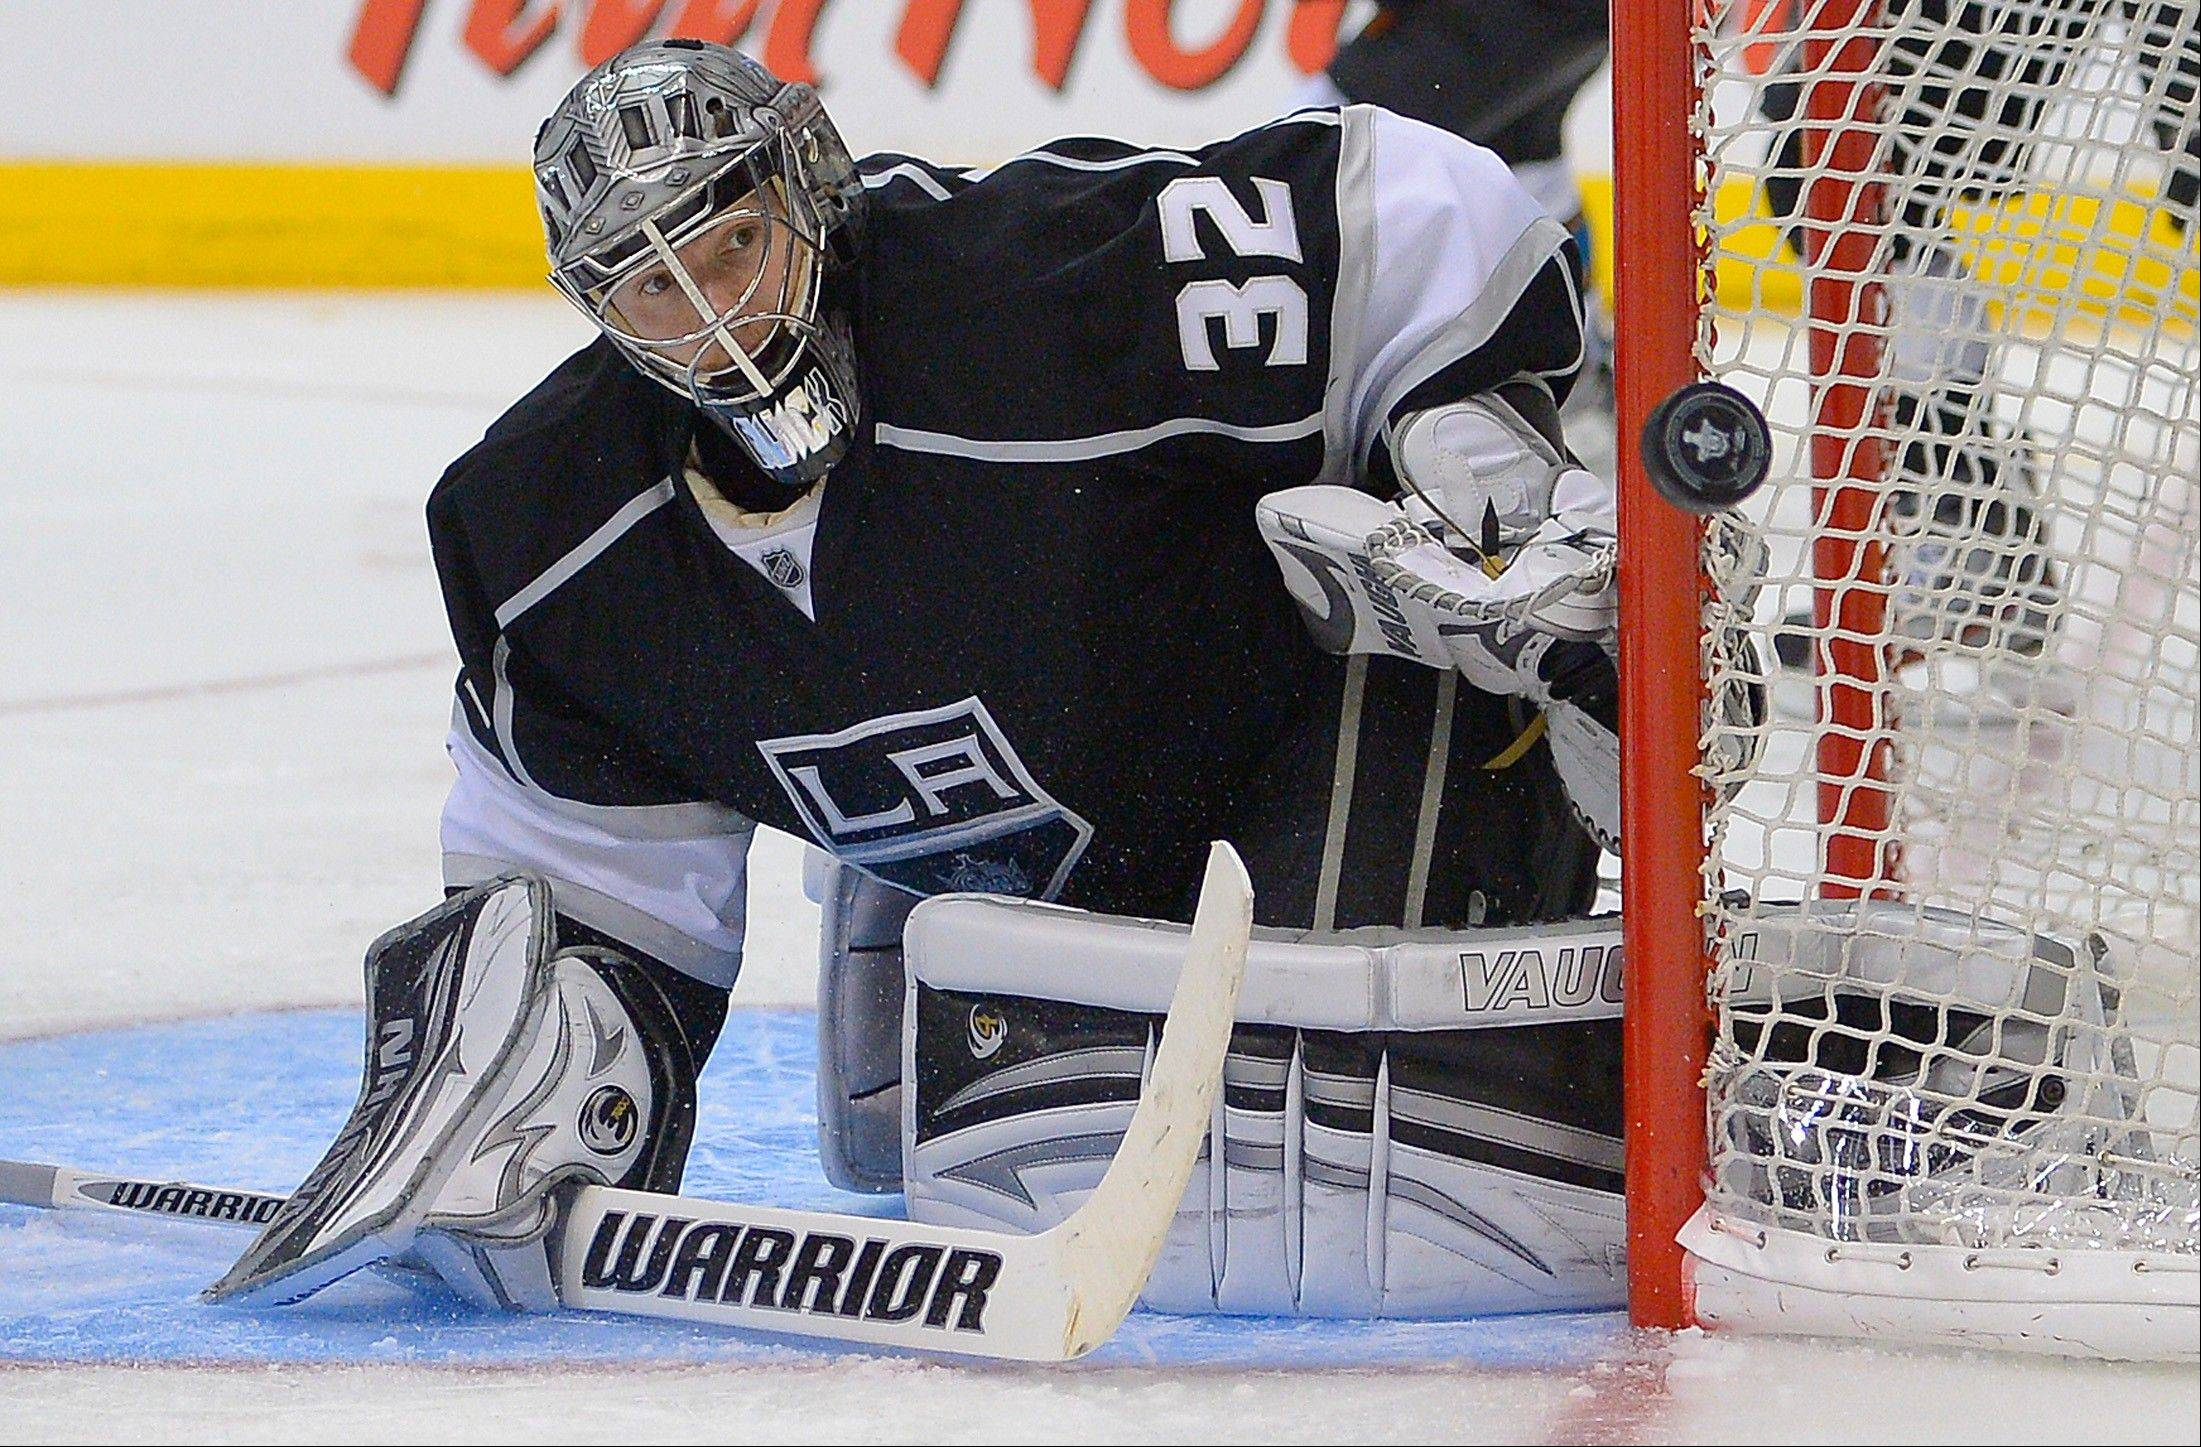 Los Angeles Kings goalie Jonathan Quick (32) deflects a shot during the third period against the San Jose Sharks in Game 5 of the Western Conference semifinals in the NHL hockey Stanley Cup playoffs, Thursday, May 23, 2013, in Los Angeles.